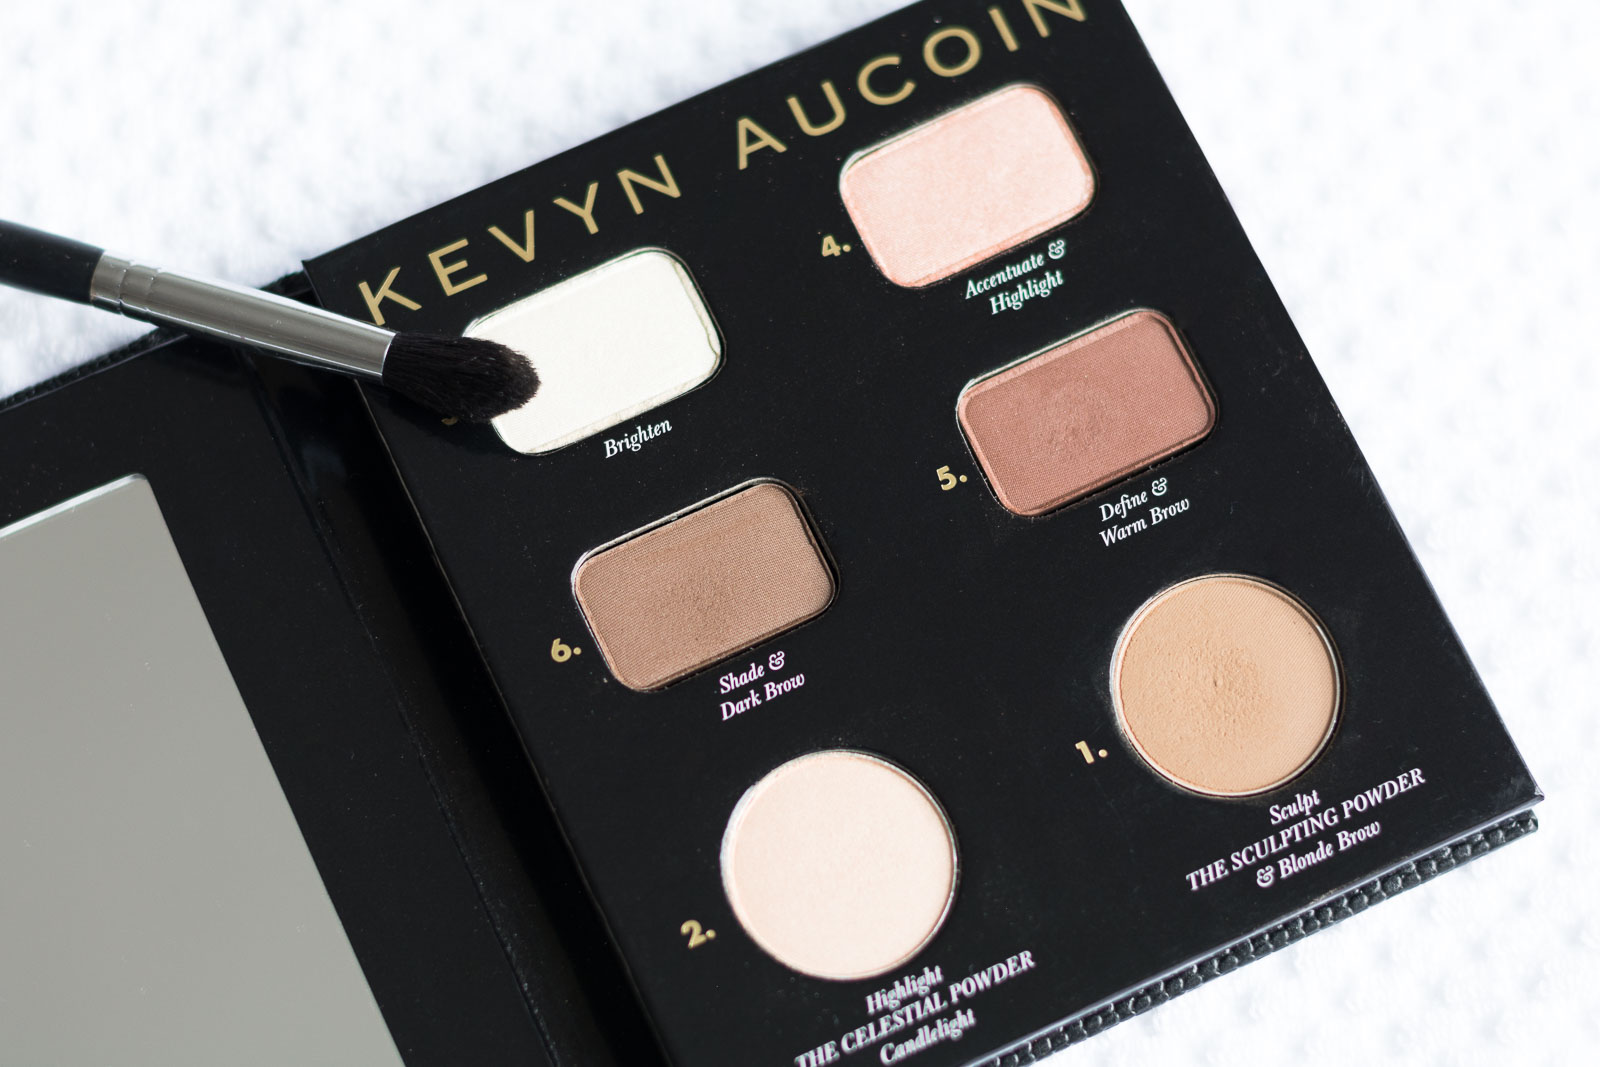 Kevyn Aucoin The Contour Book The Art Of Sculpting & Defining